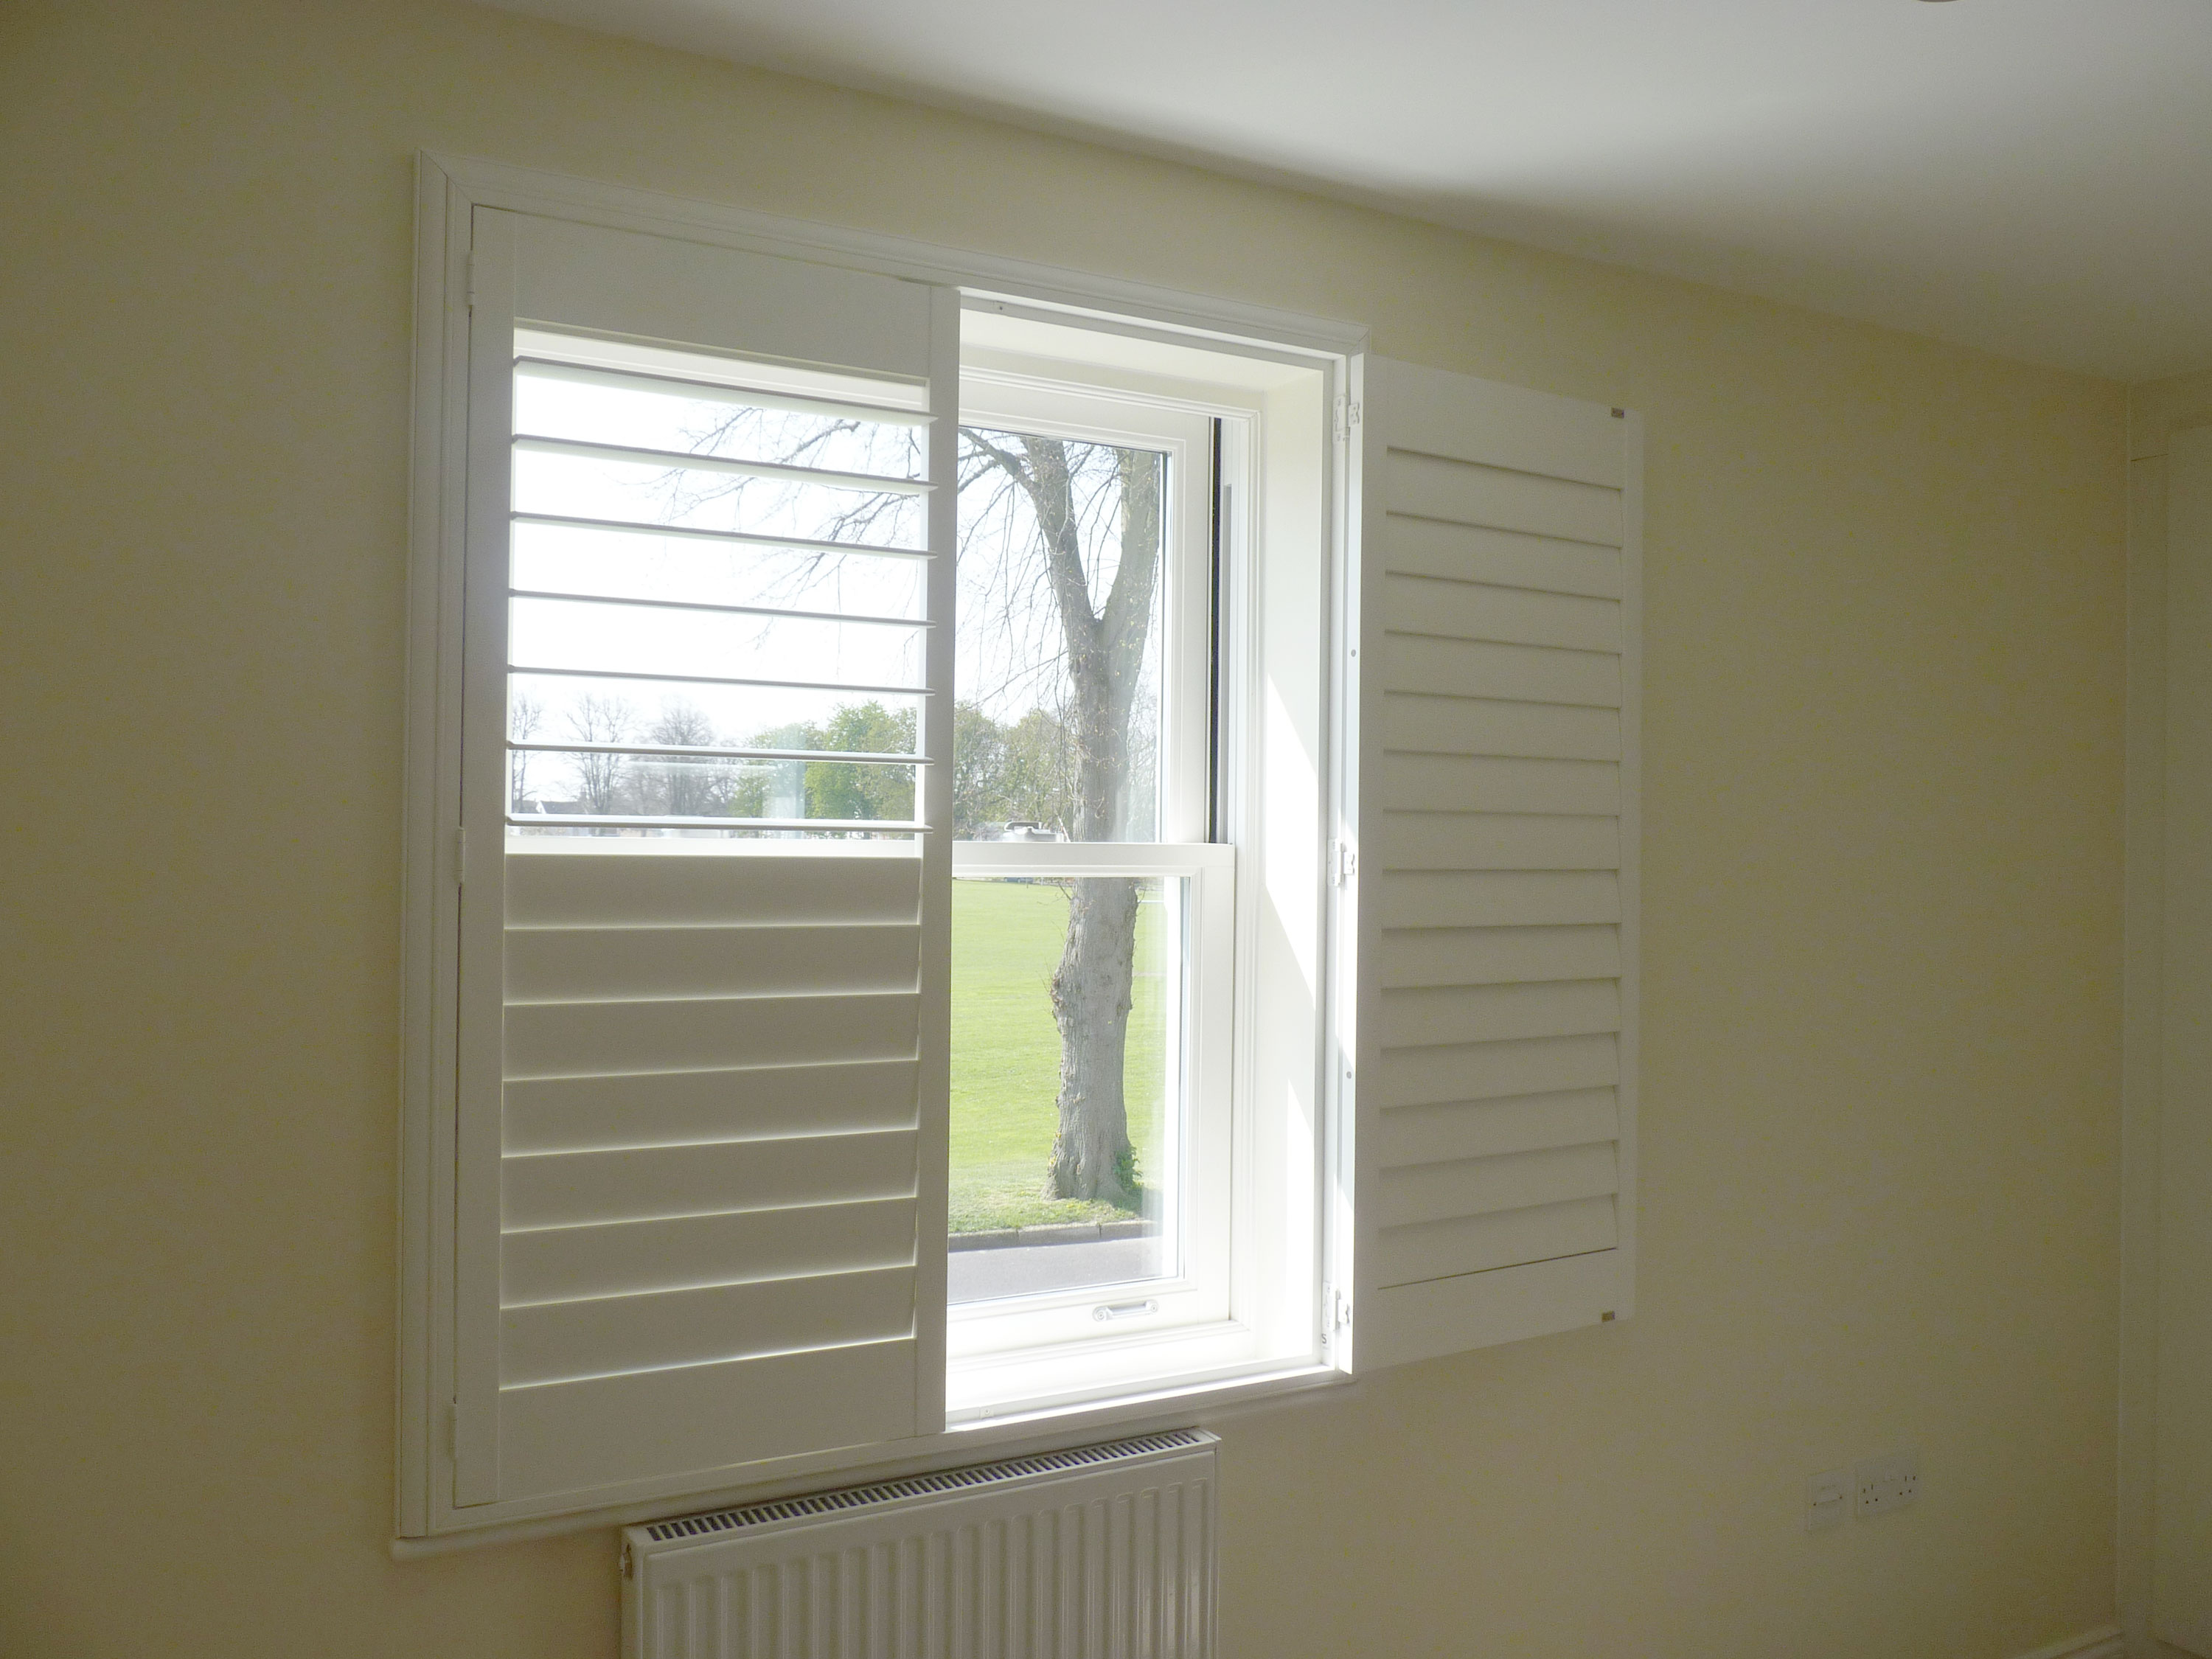 How to assemble a deco shutter frame opennshut for Bifold interior window shutters